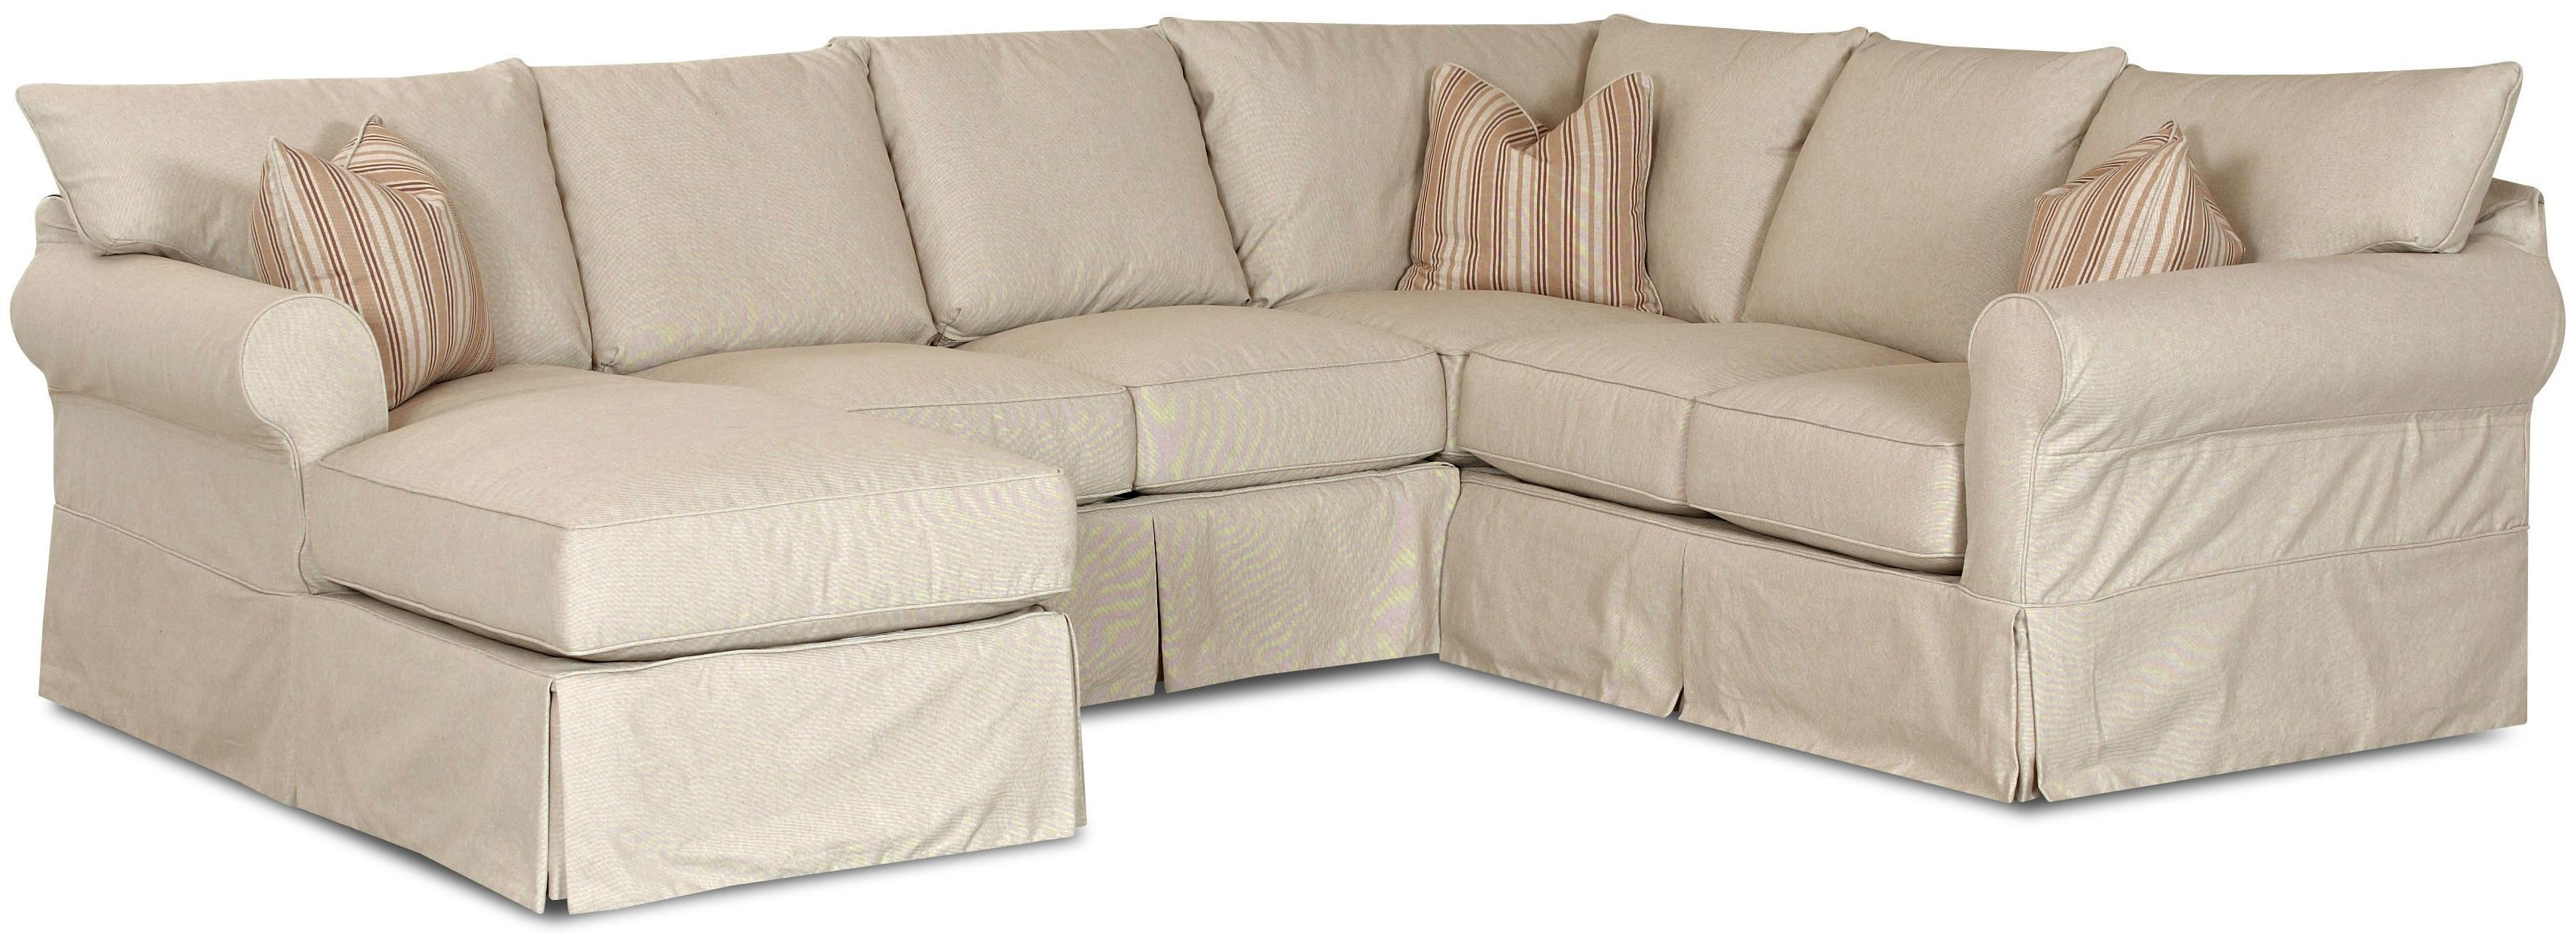 3 Piece Sectional Sofa Slipcovers Sectional Sofa 2 Piece